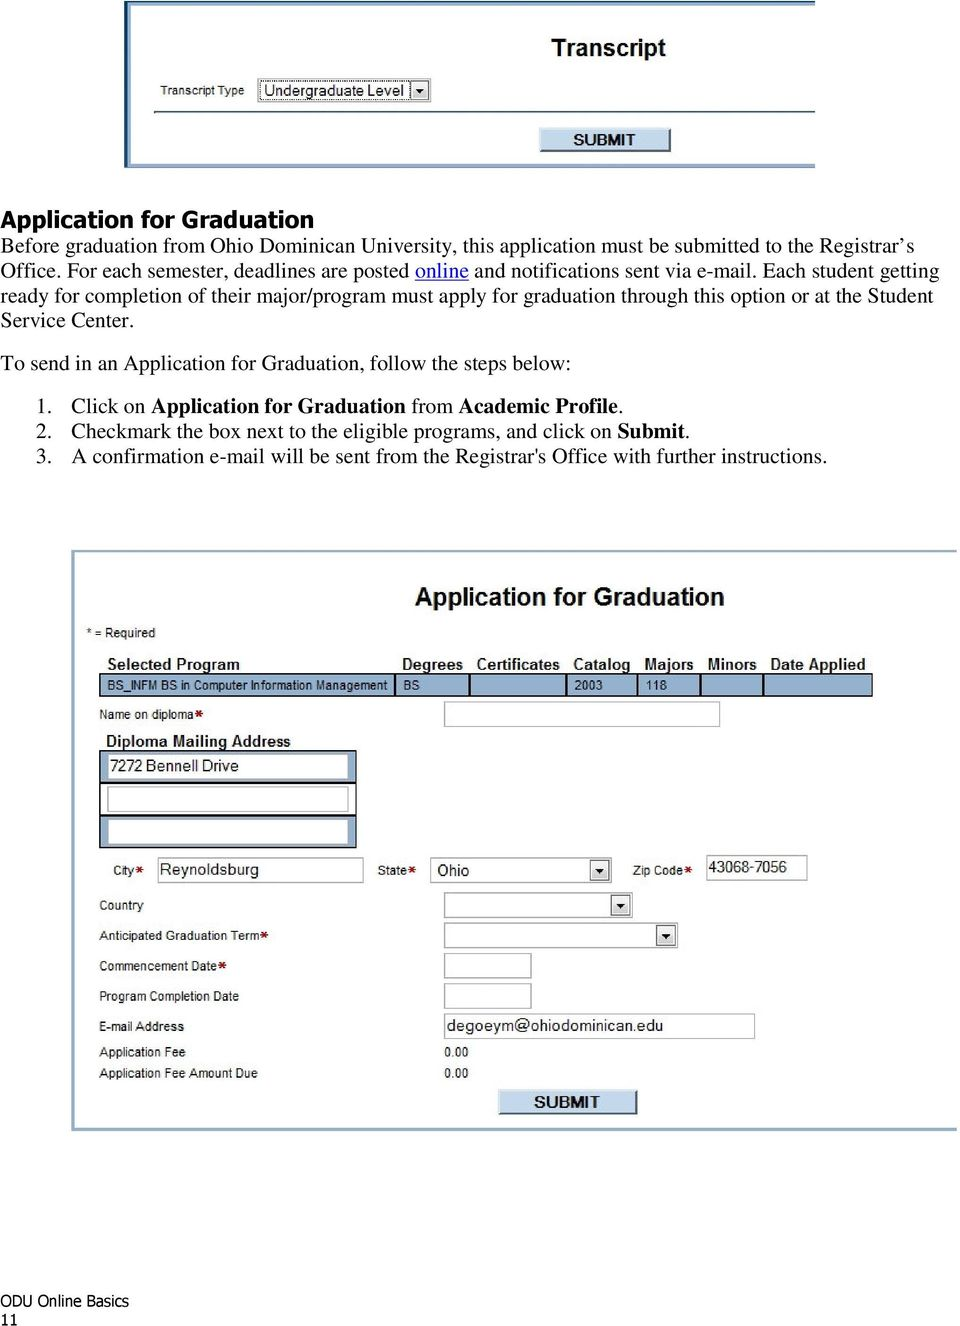 Each student getting ready for completion of their major/program must apply for graduation through this option or at the Student Service Center.